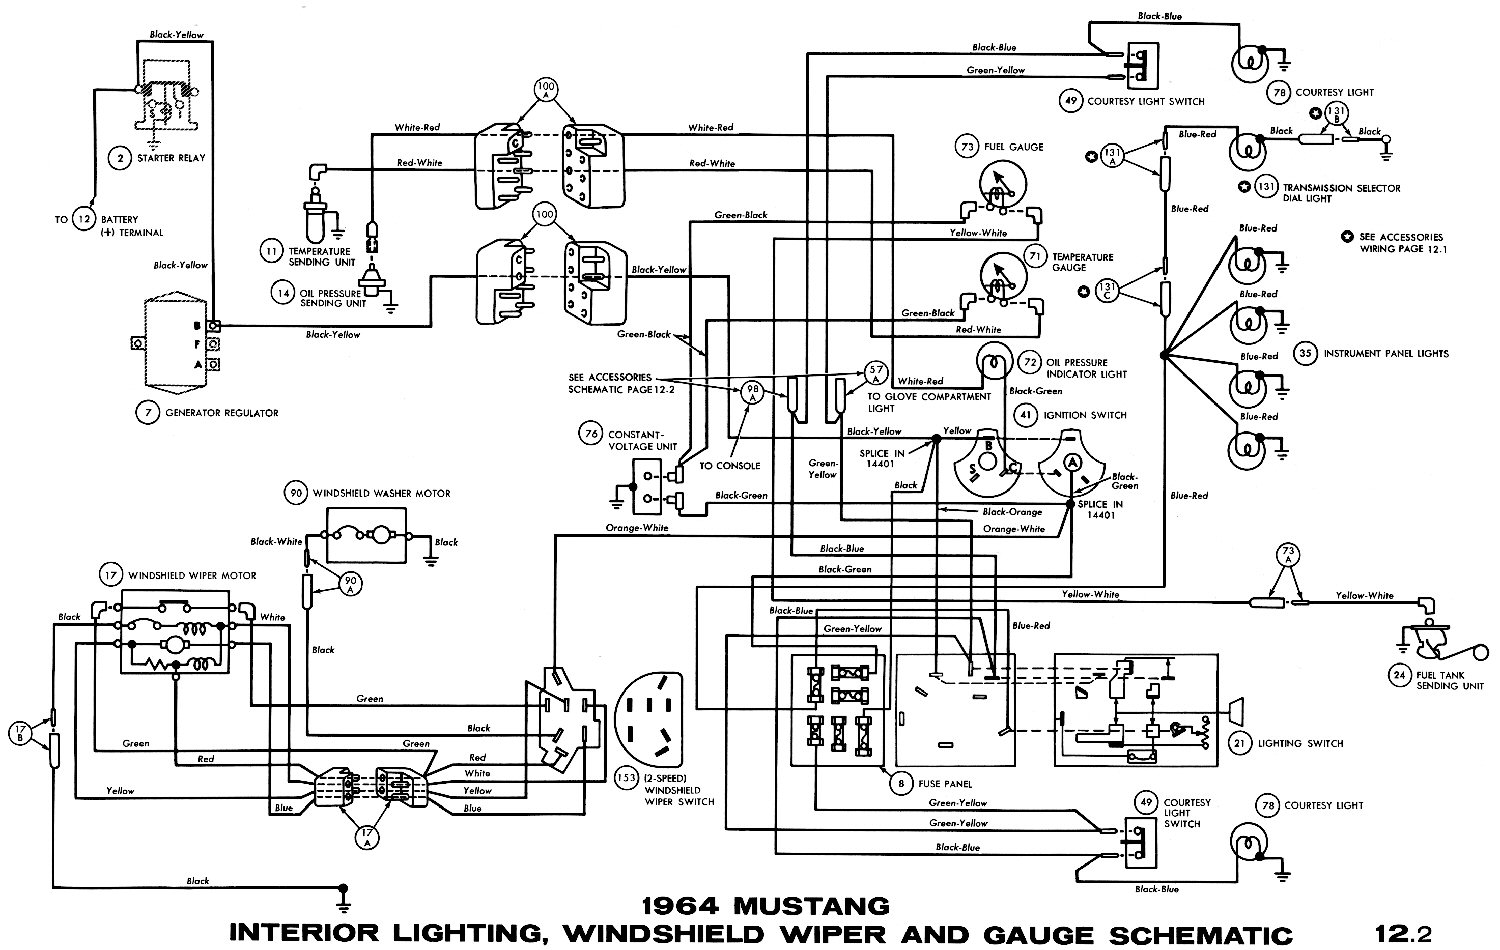 Incredible 1964 Mustang Wiring Diagrams Average Joe Restoration Wiring Cloud Geisbieswglorg